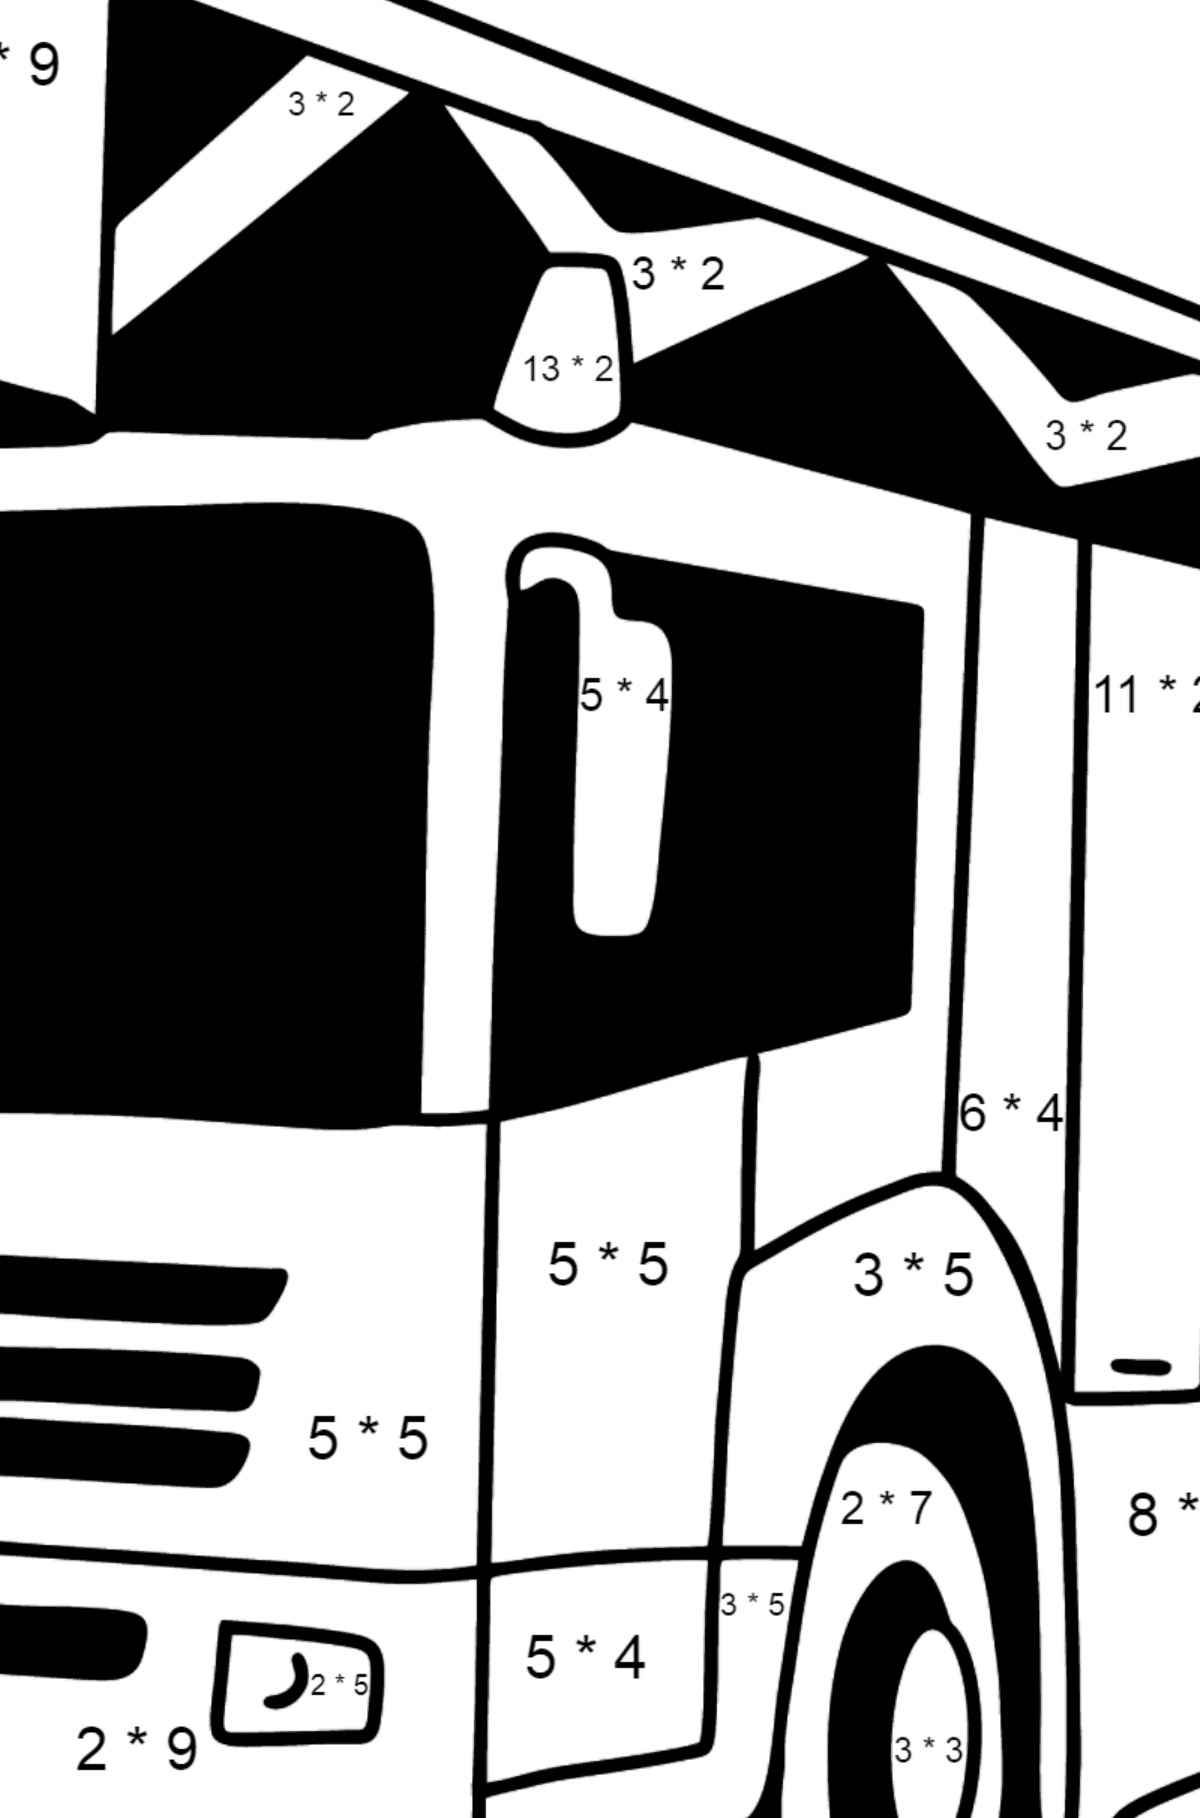 Fire Truck in Germany coloring page - Math Coloring - Multiplication for Kids